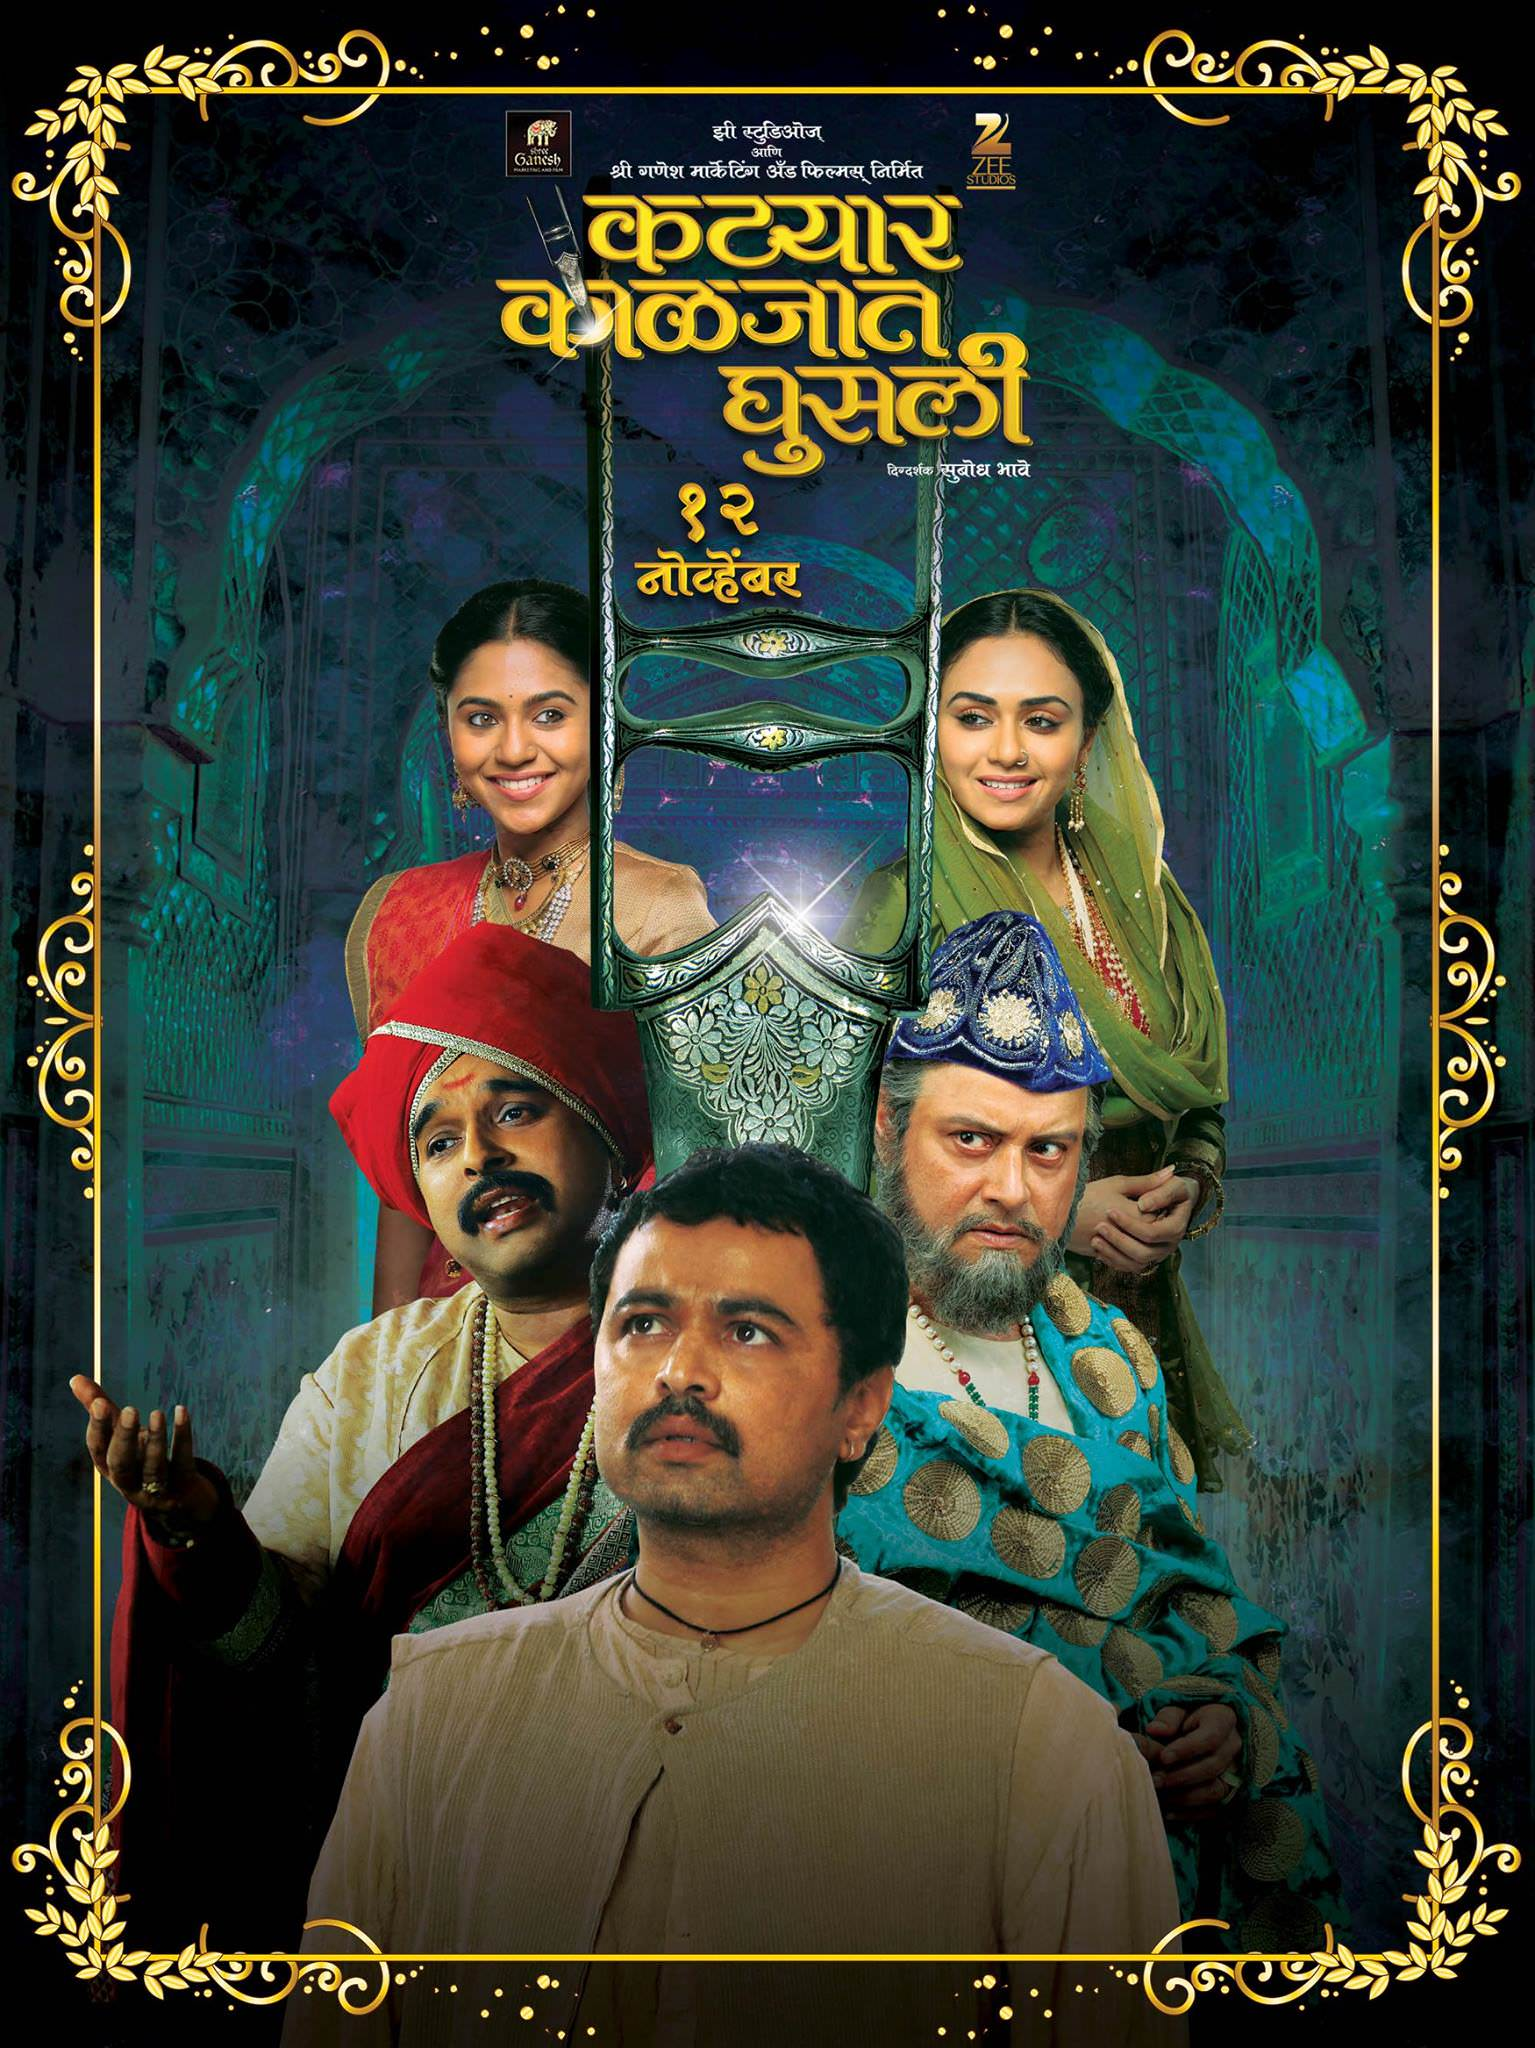 Katyar Kaljat Ghusali 2015 Marathi Movie Cast Story trailer release